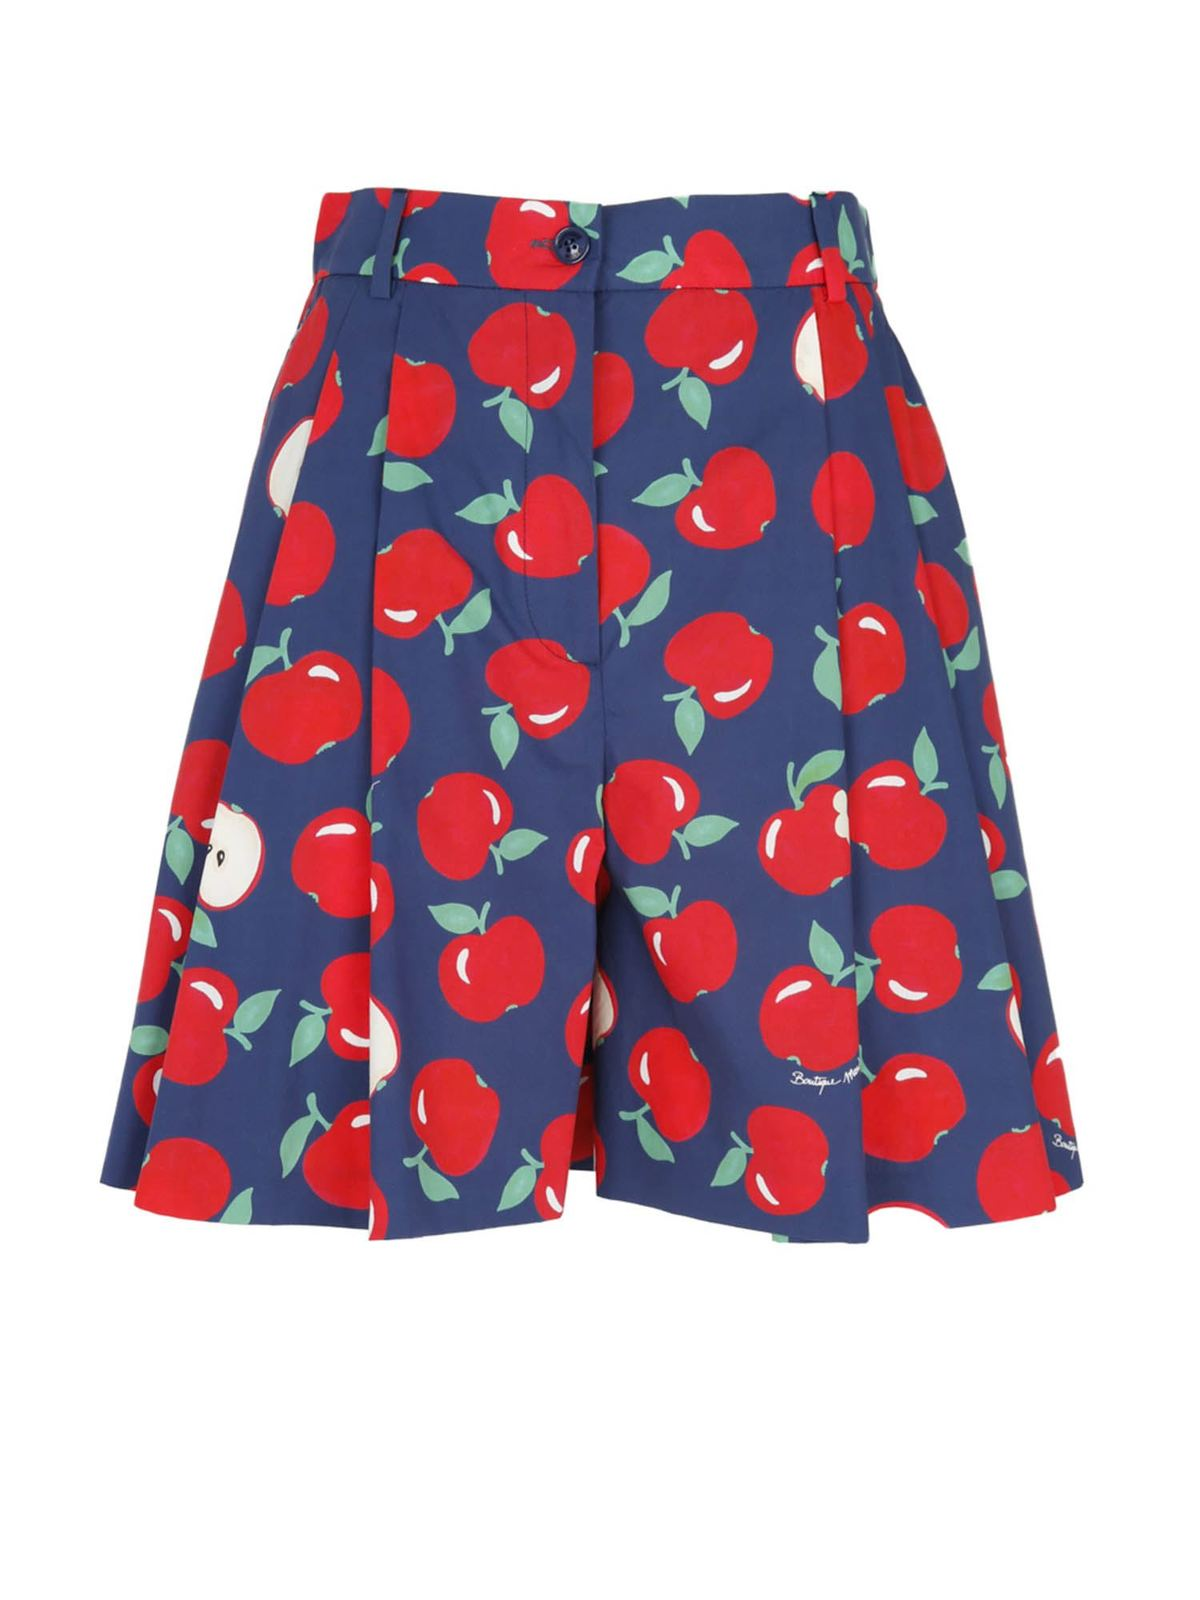 Moschino Boutique Cottons APPLE PRINT BERMUDA SHORTS IN BLUE AND RED